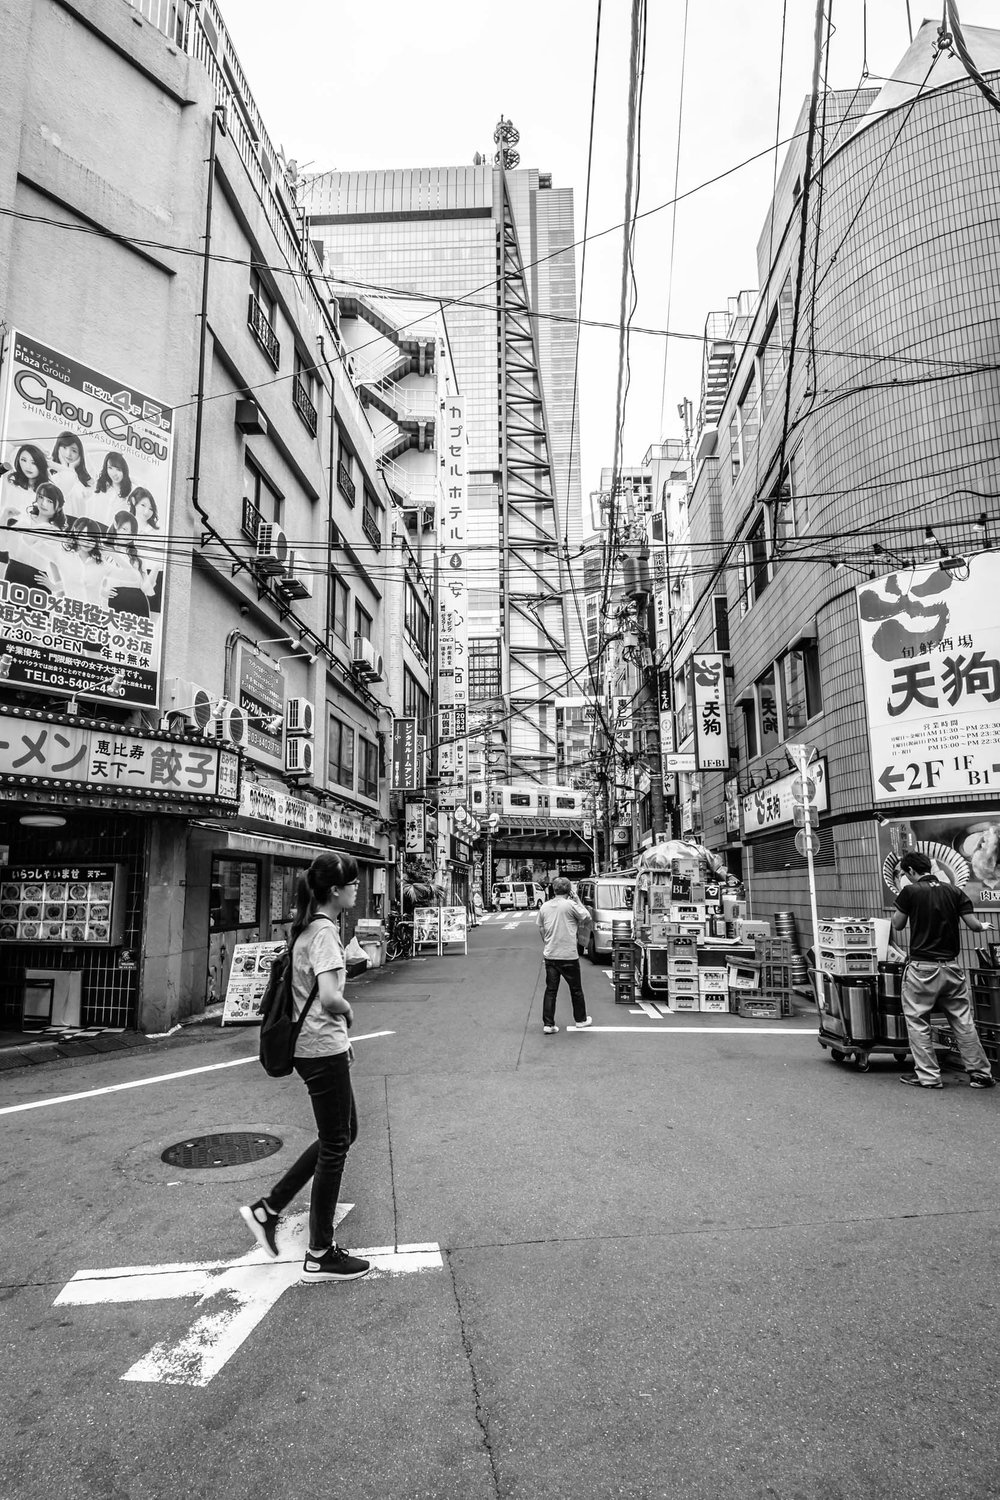 The cable-covered streets of Shinbashi